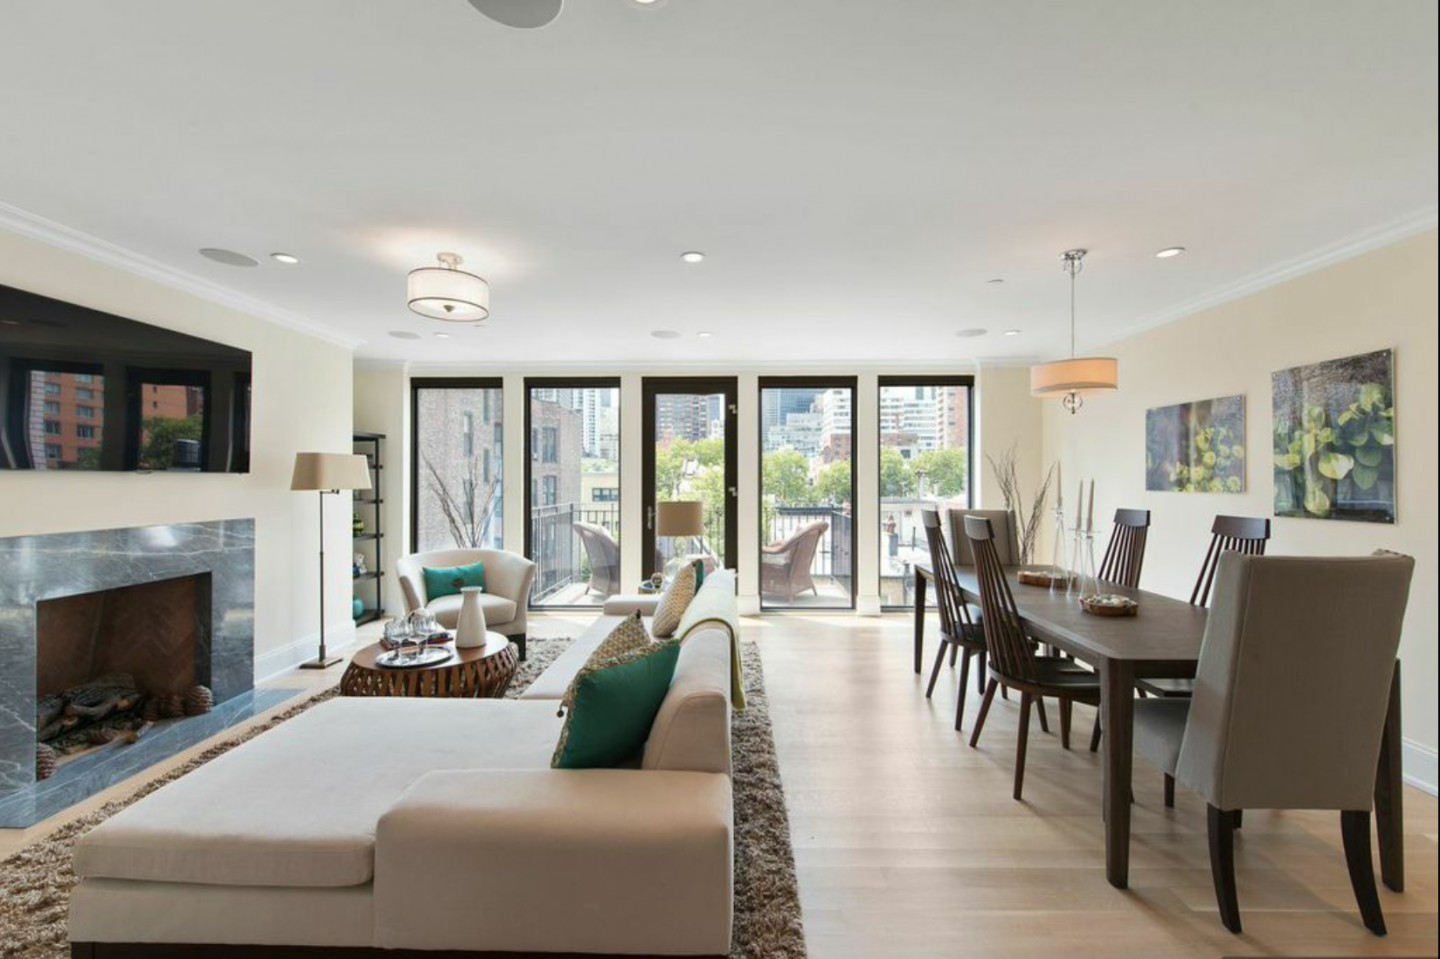 A glimpse of the penthouse living area at The Justin